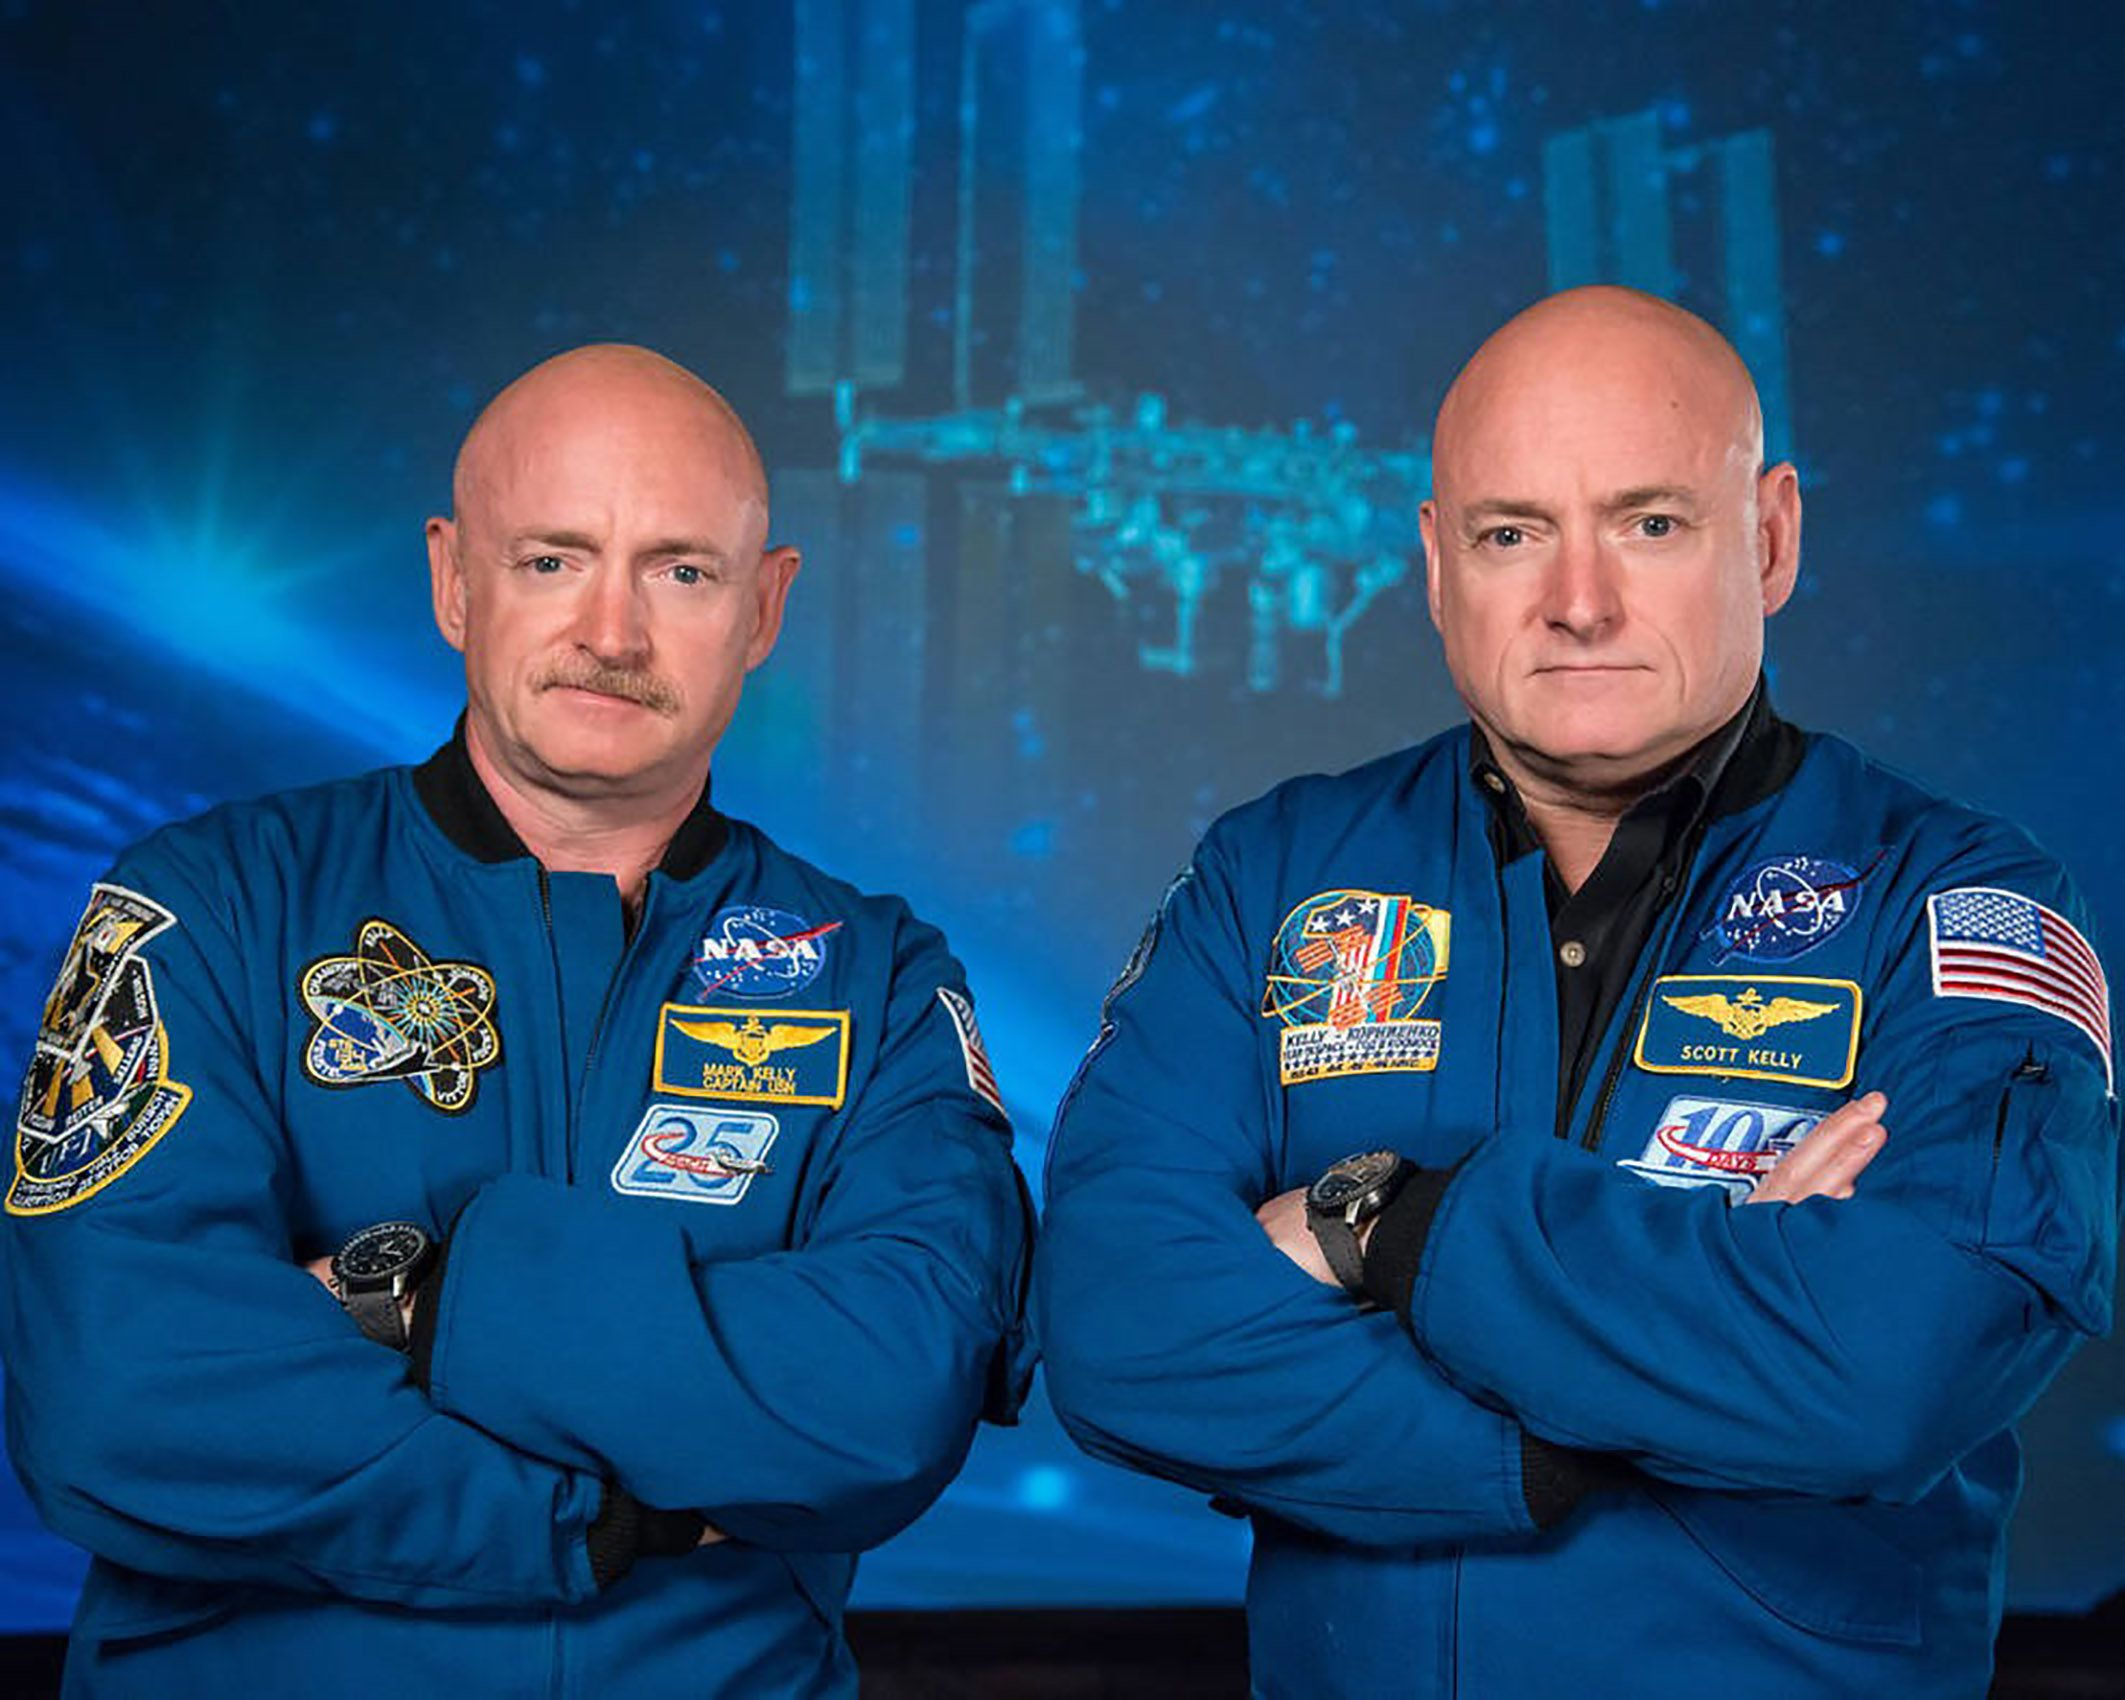 Recent photo released by NASA shows former astronaut Scott Kelly (R), who was the Expedition 45/46 commander during his one-year mission aboard the International Space Station, along with his twin brother, former astronaut Mark Kelly (L). - The Twins Study, by the Journal Science, is helping scientists better understand the impacts of spaceflight on the human body through the study of identical twins. Retired astronaut Scott Kelly spent 340 days in low-Earth orbit aboard the International Space Station while retired astronaut Mark Kelly, his identical twin, remained on Earth. The twins genetic similarity provided scientists with a reduced number of variables and an ideal control group, both important to scientific investigation. (Photo by Robert MARKOWITZ / NASA / AFP)        (Photo credit should read ROBERT MARKOWITZ/AFP/Getty Images)